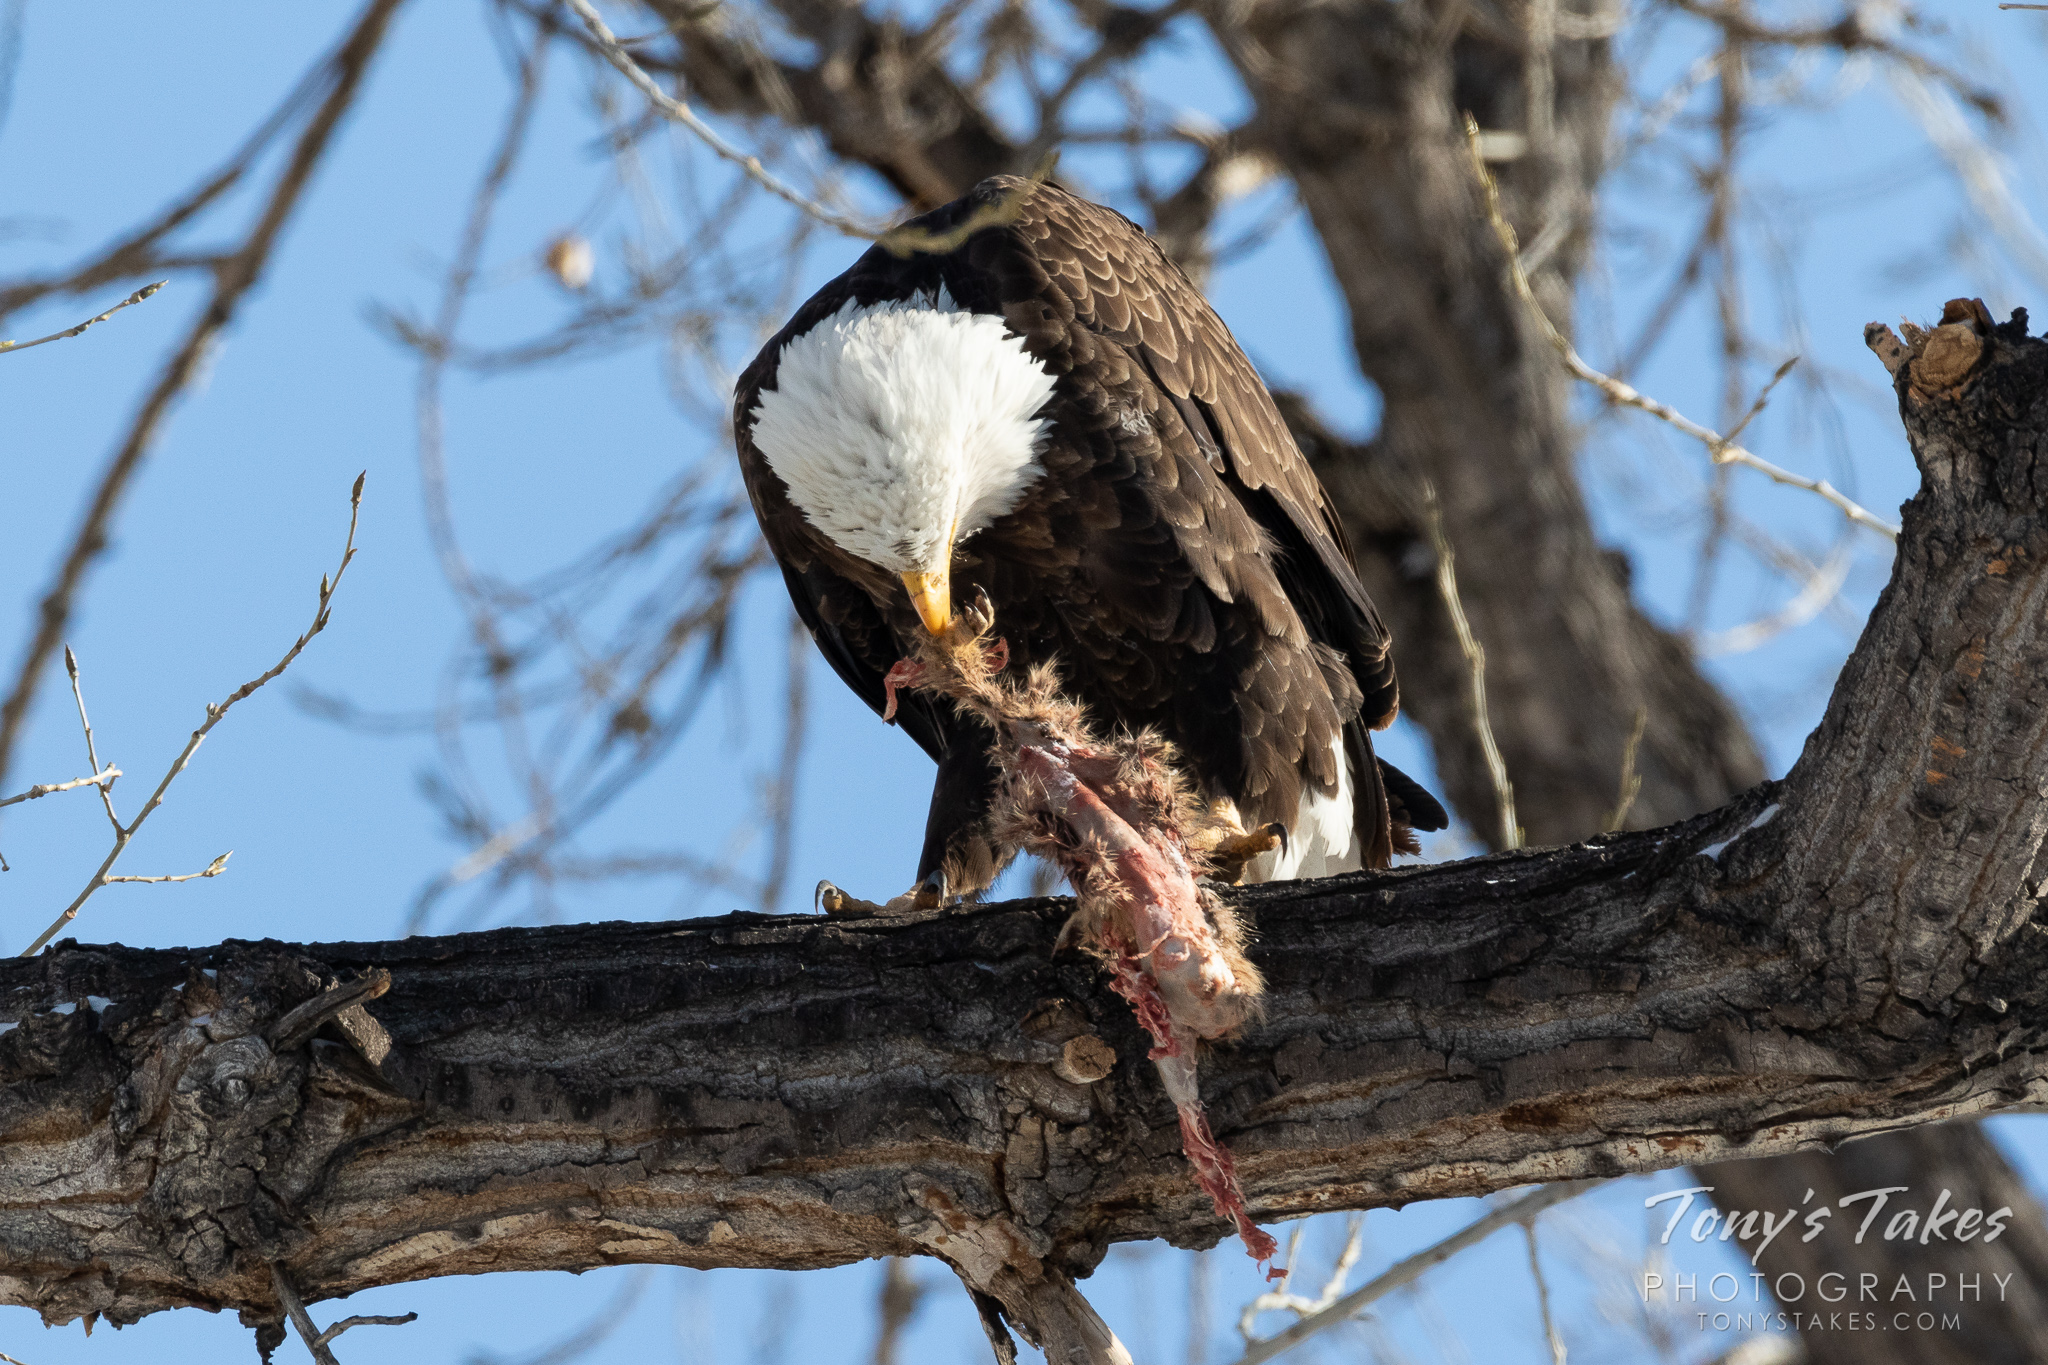 A bald eagle in Thornton, Colorado, guards its meal. (© Tony's Takes)